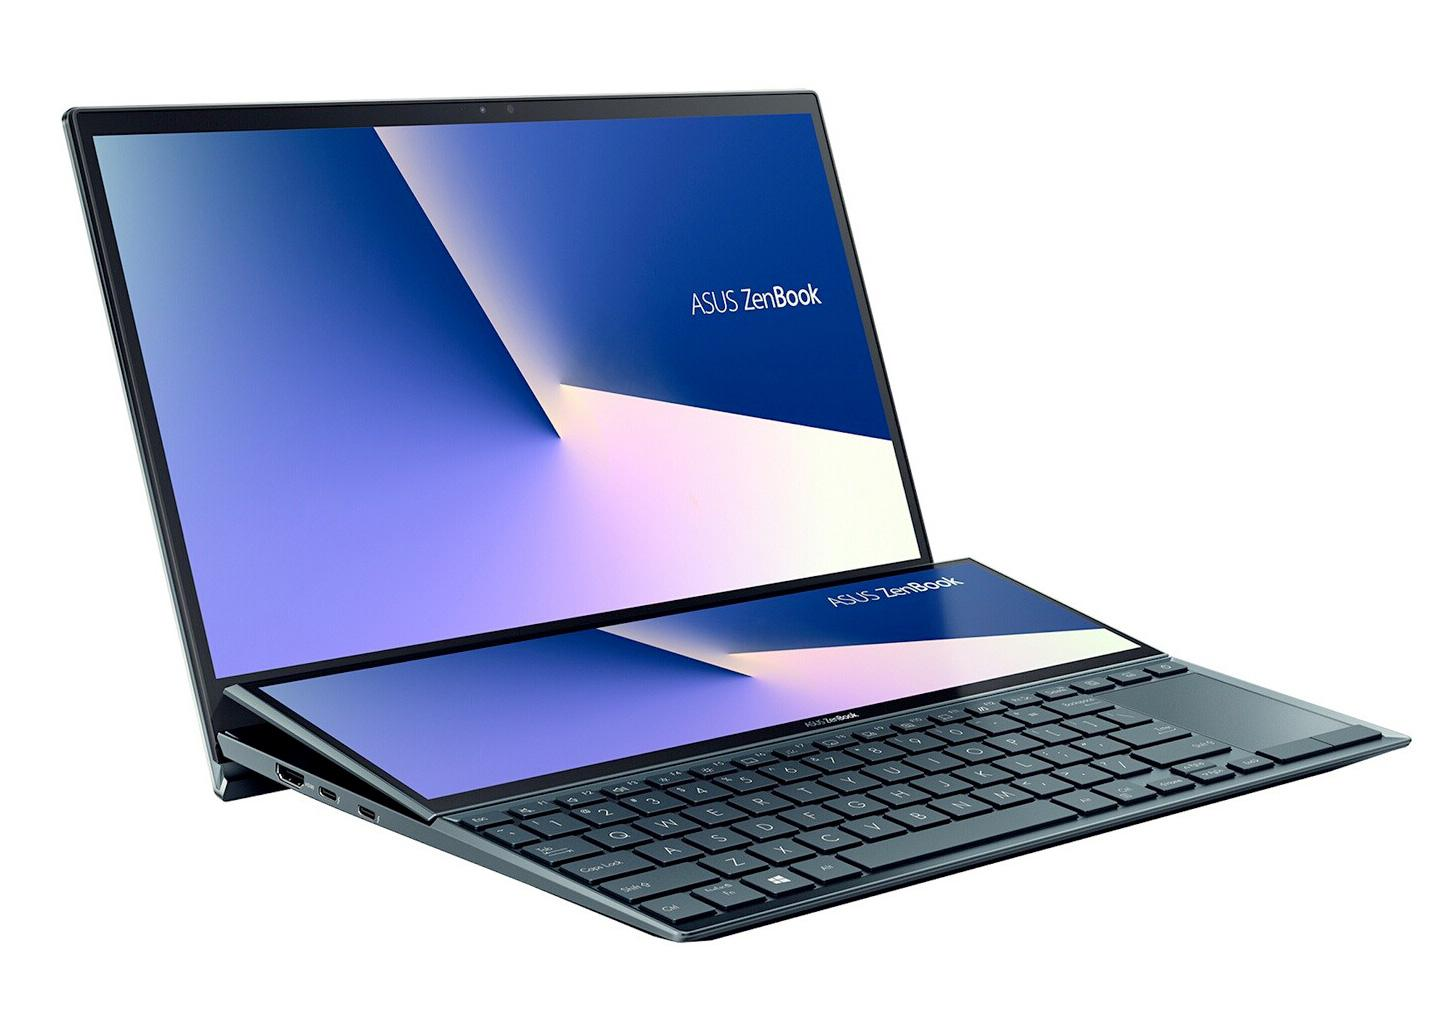 Image du PC portable Asus ZenBook Duo UX482EG-HY142T Bleu/Noir - Tactile, MX450, ScreenPad Plus